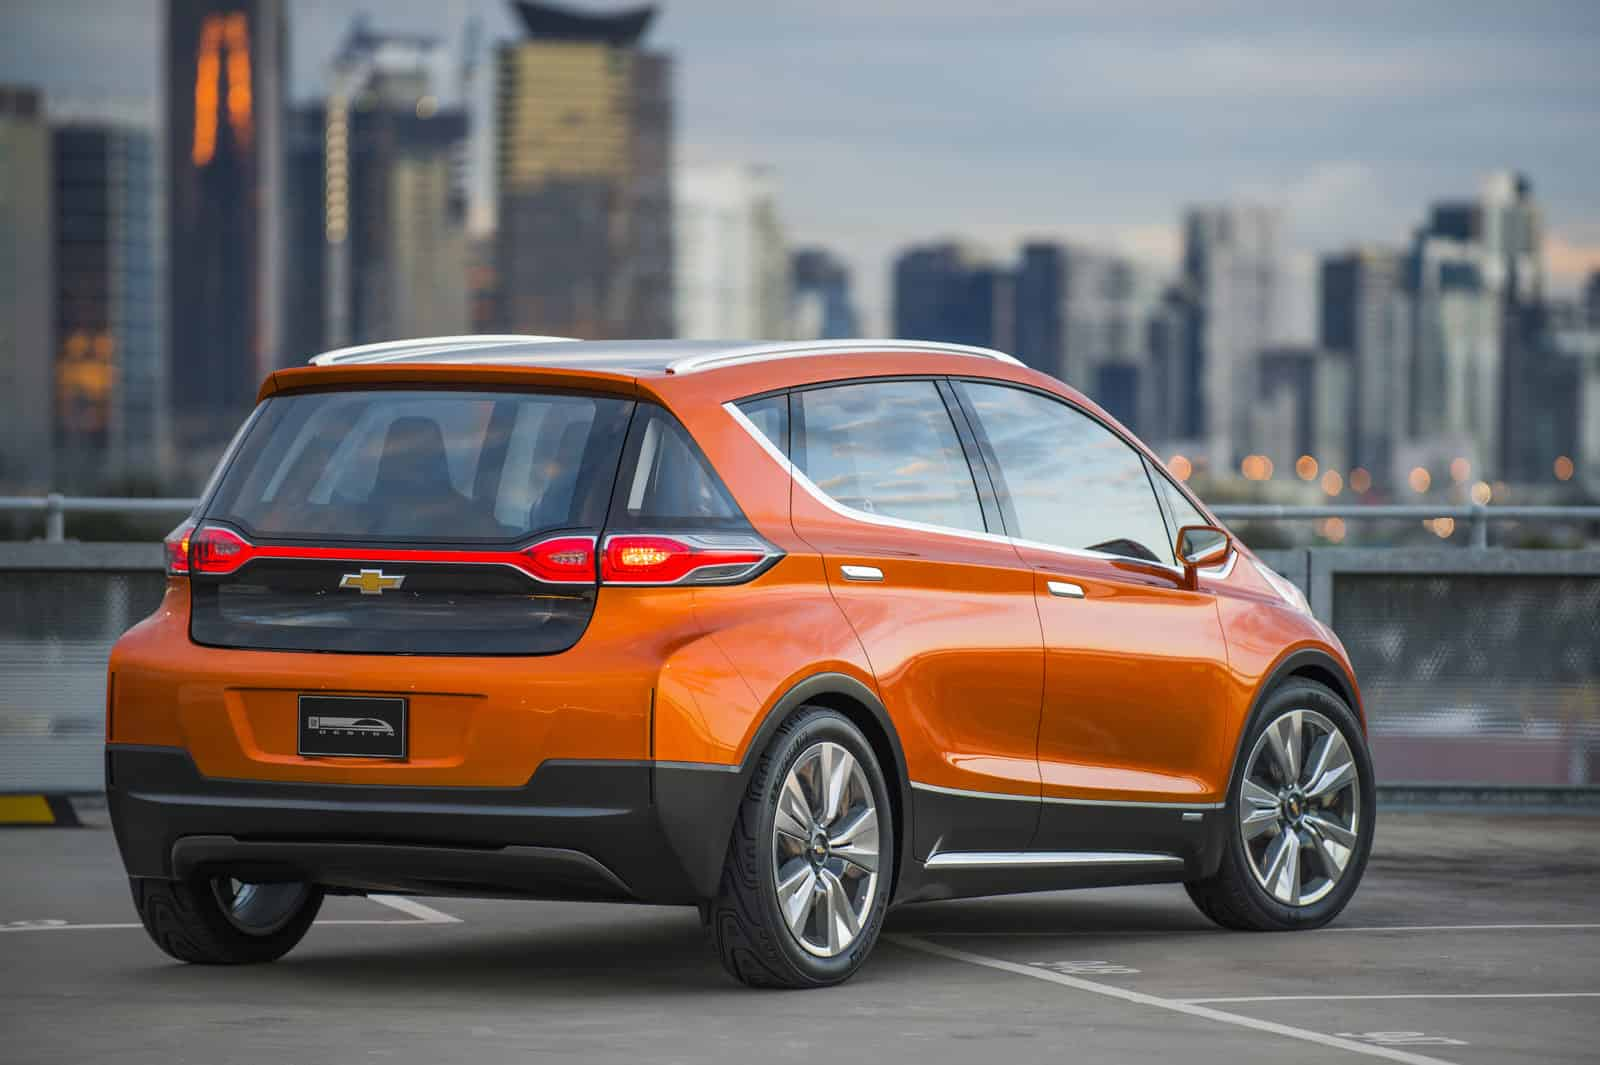 2015 Chevrolet Bolt EV Concept all electric vehicle. Rear ¾ in city scape. Bolt EV Concept builds upon Chevy's experience gained from both the Volt and Spark EV to make an affordable, long-range all-electric vehicle to market. The Bolt EV is designed to meet the daily driving needs of Chevrolet customers around the globe with more than 200 miles of range and a price tag around $30,000.